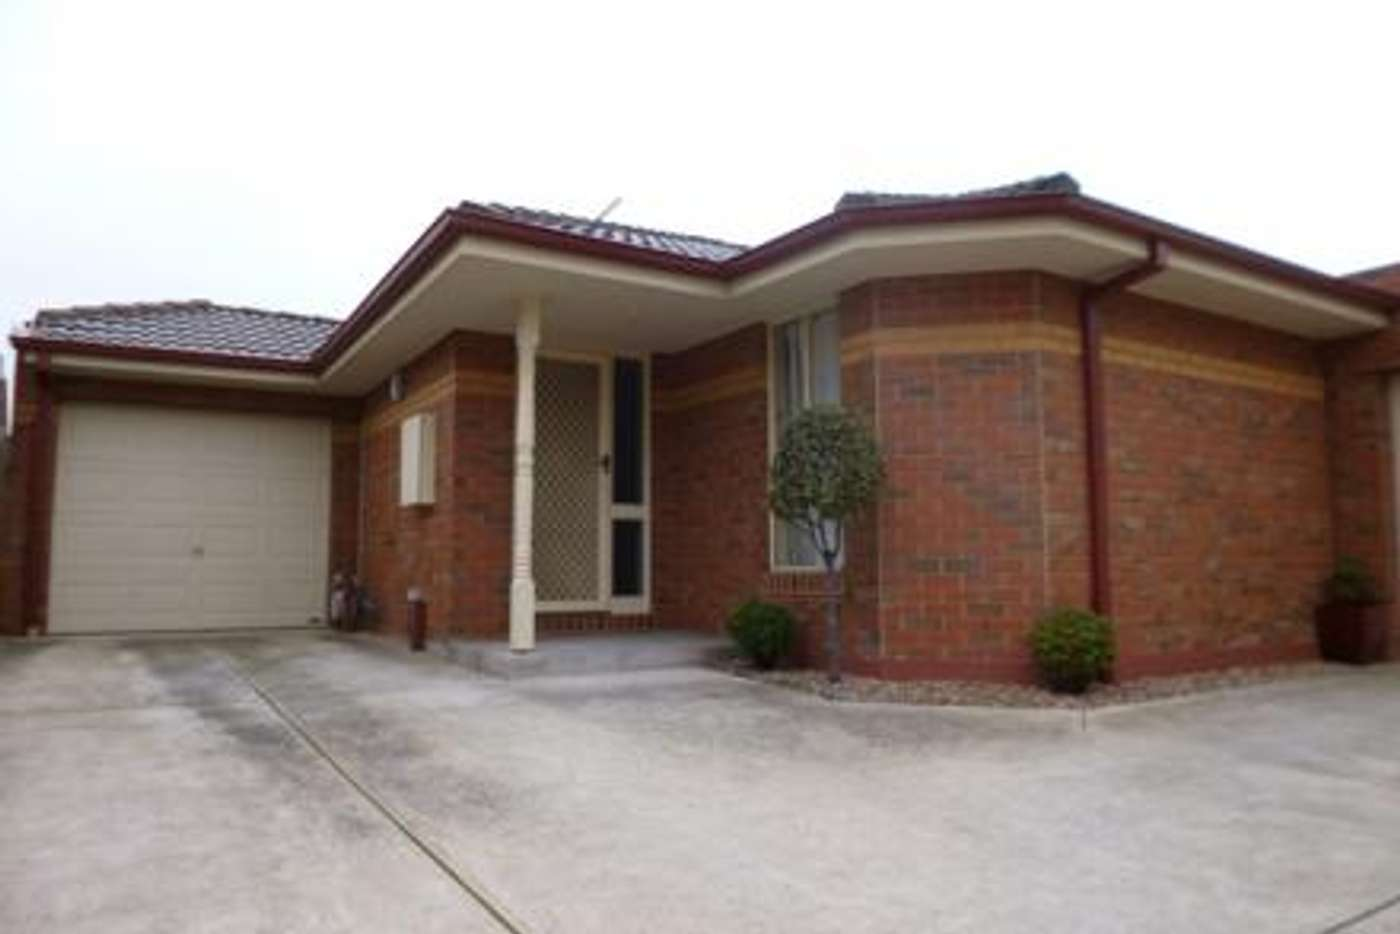 Main view of Homely unit listing, 3/29 Walters Avenue, Airport West VIC 3042